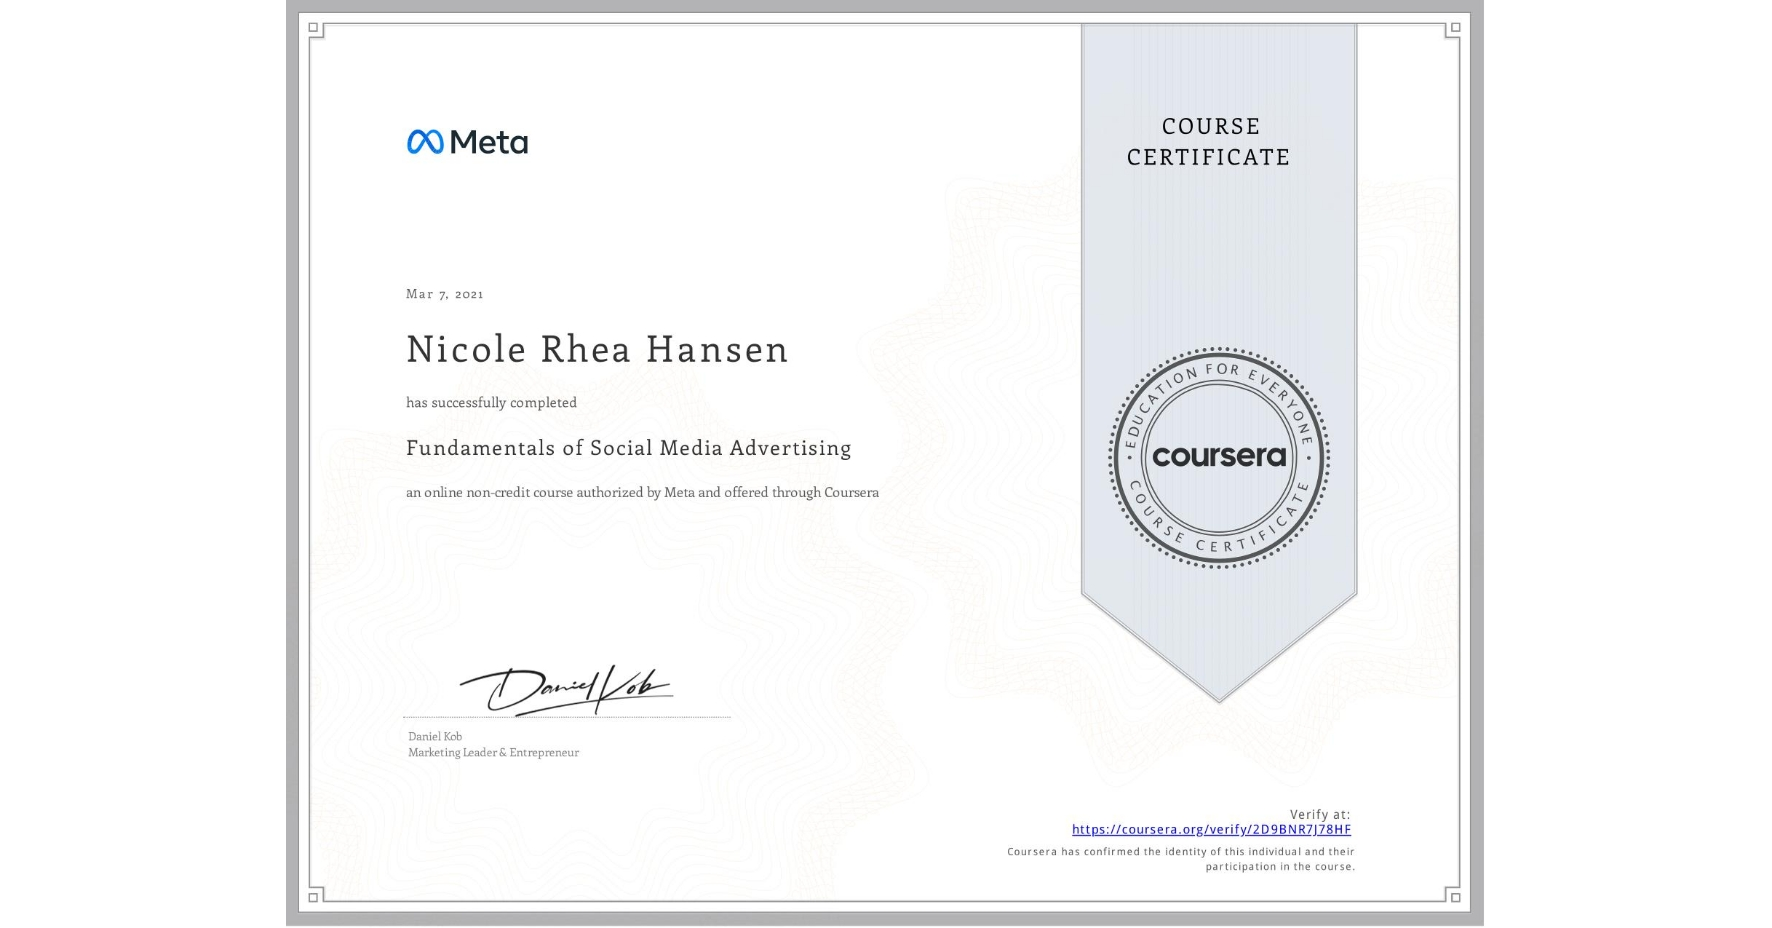 View certificate for Nicole Rhea Hansen, Fundamentals of Social Media Advertising, an online non-credit course authorized by Facebook and offered through Coursera